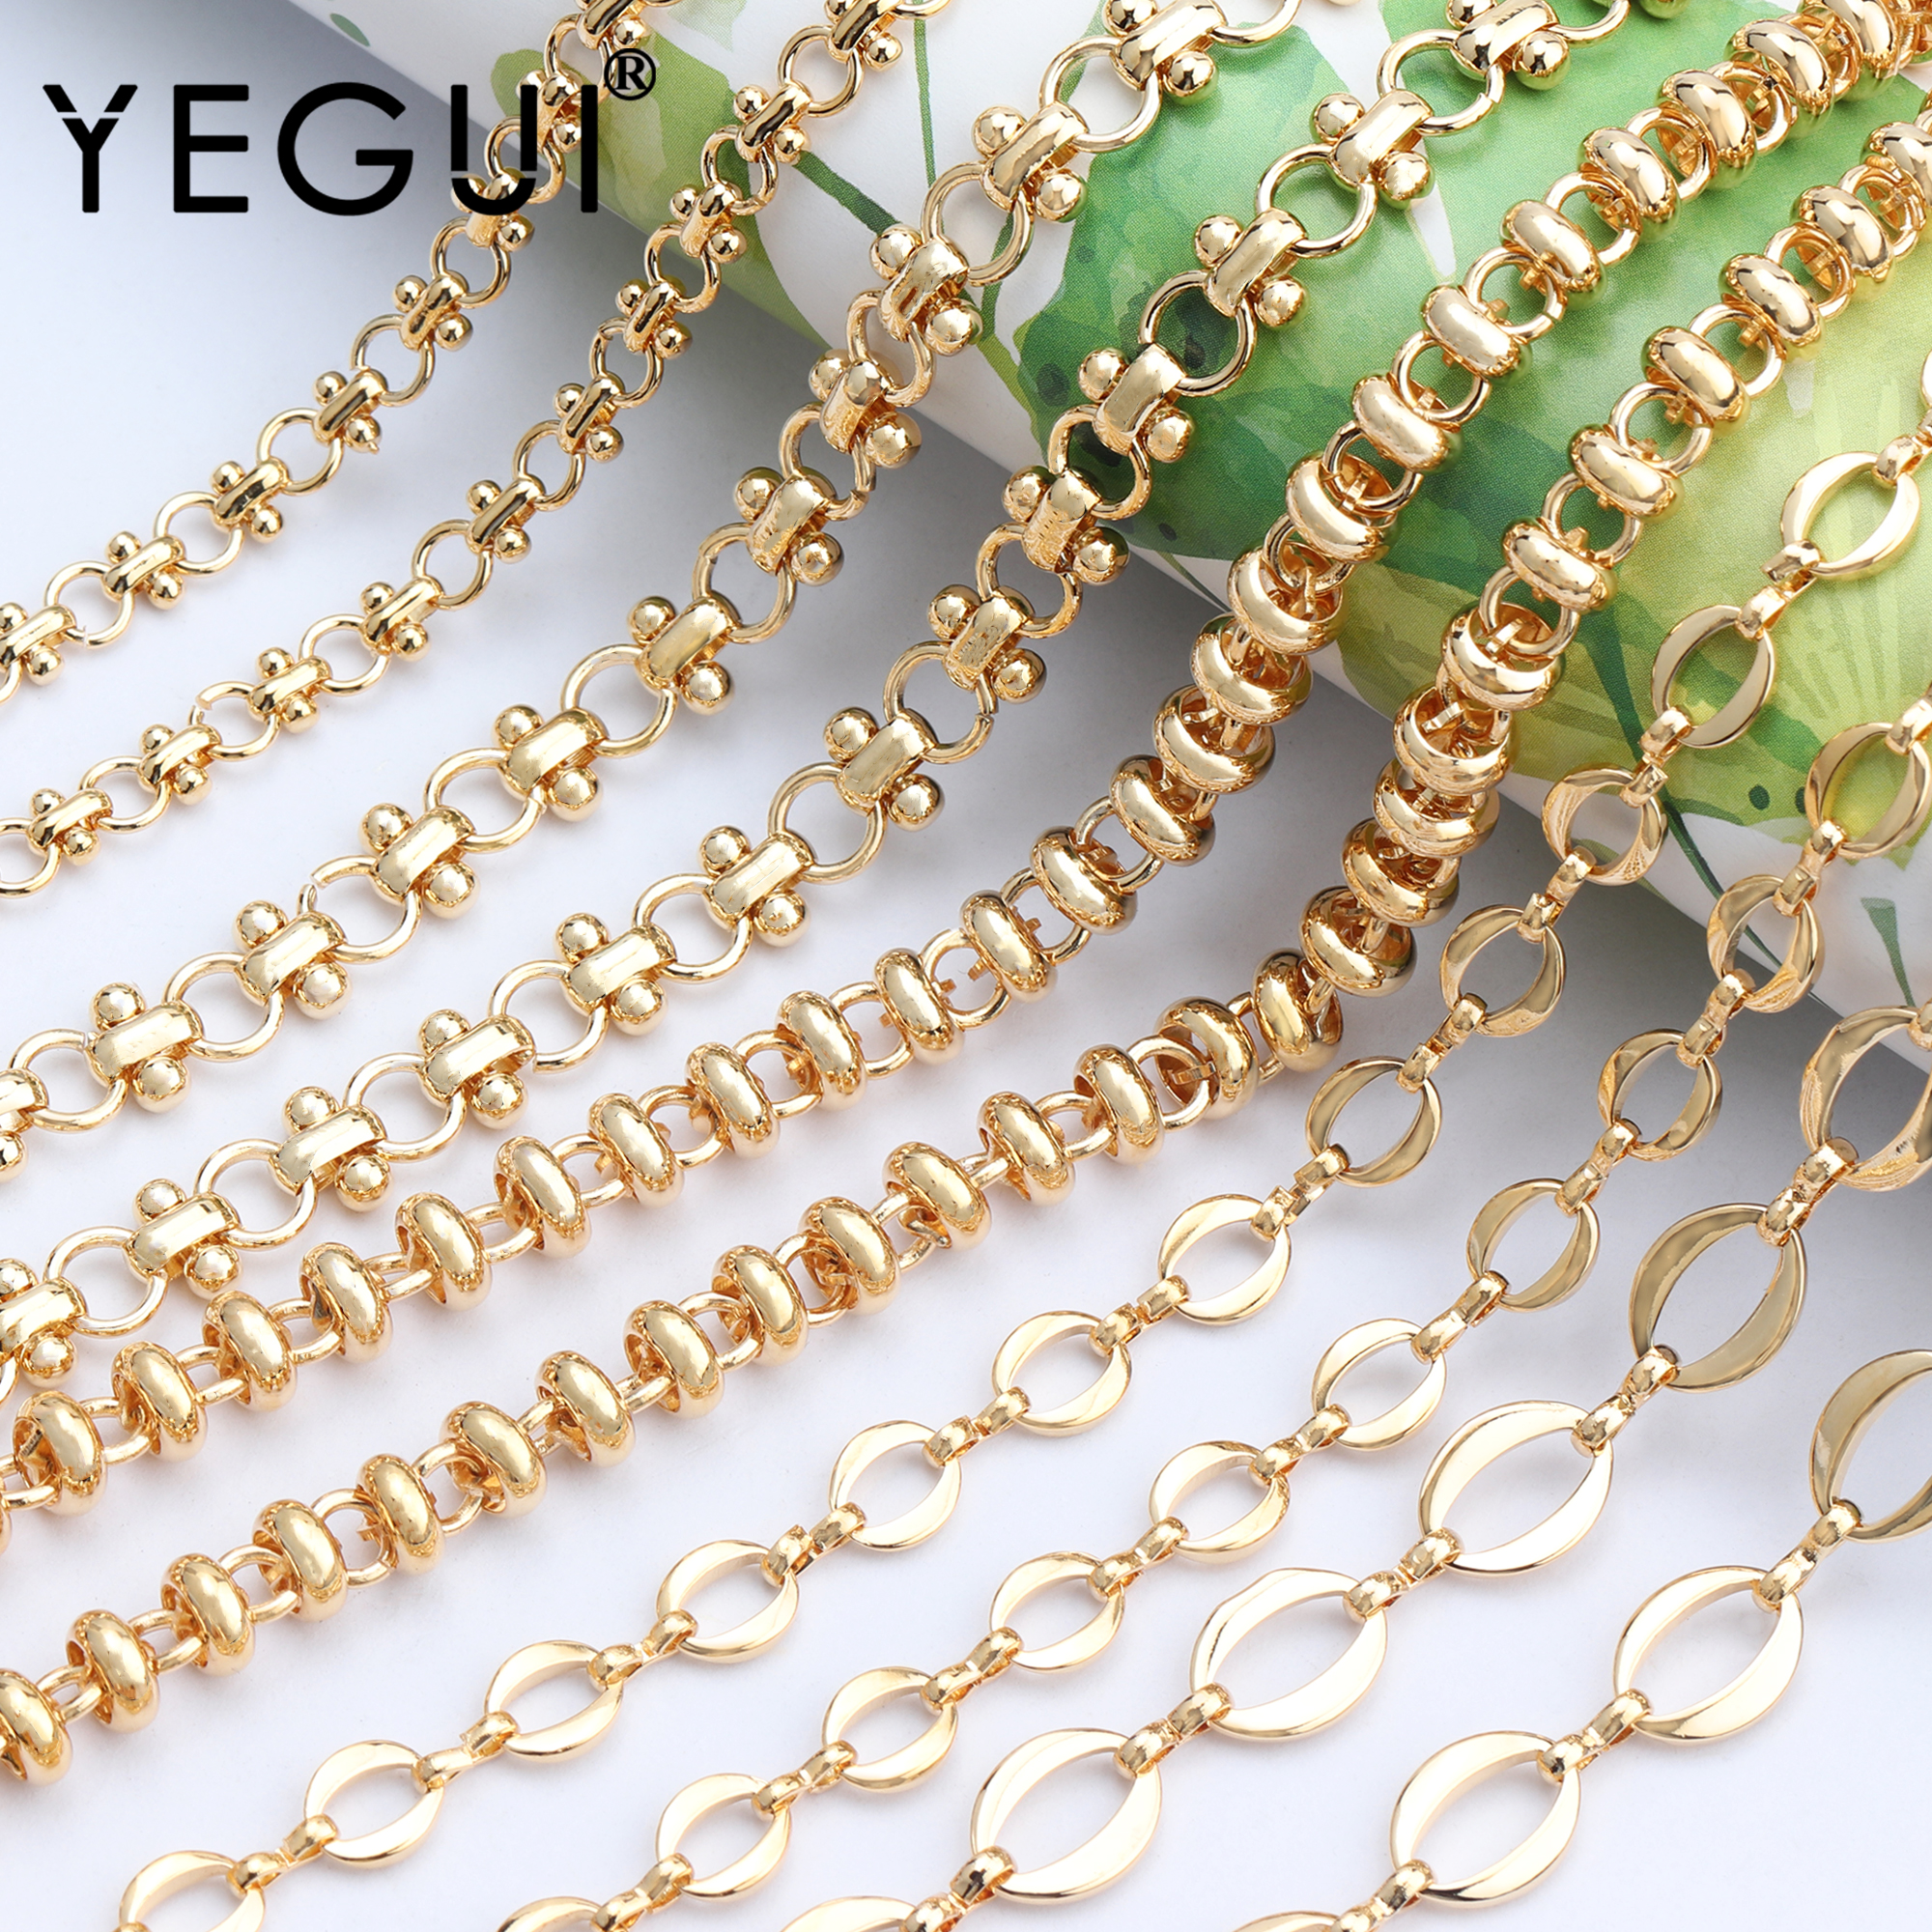 YEGUI C77,diy Chain,18k Gold Plated,jewelry Accessories,hand Made,copper Metal,charms,jewelry Making,diy Chain Necklace,1m/lot